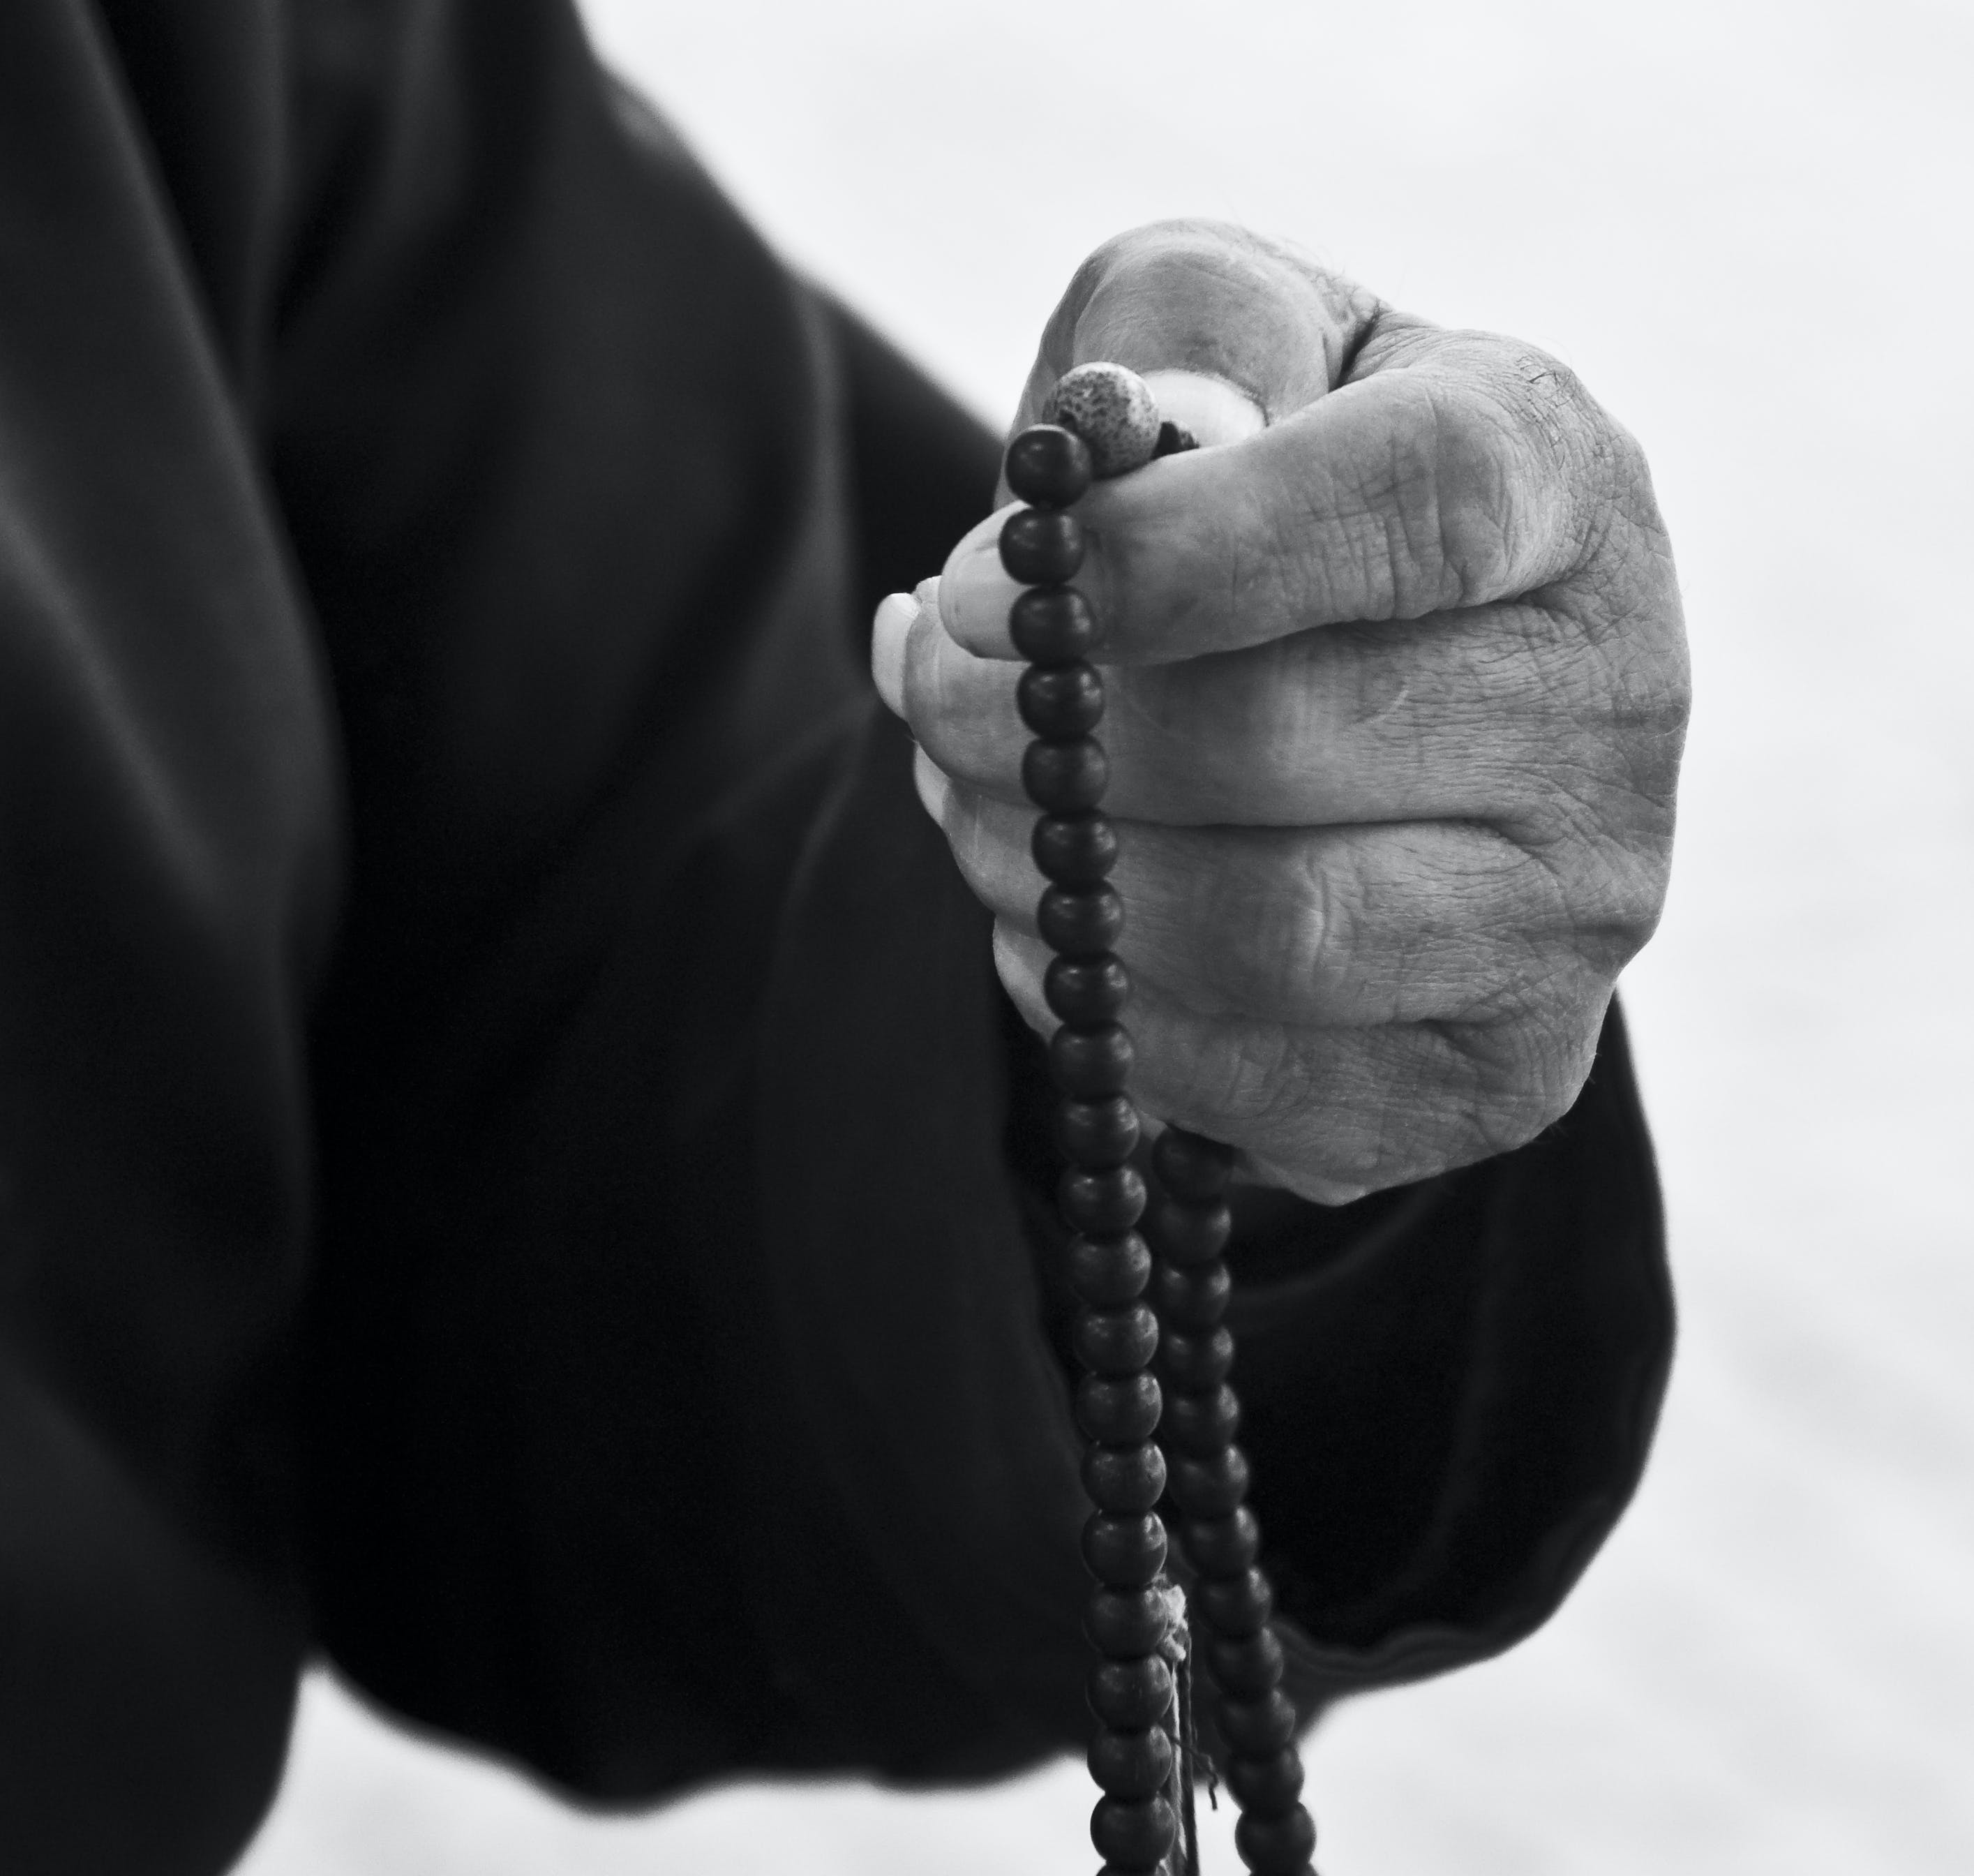 A person holding a beaded necklace